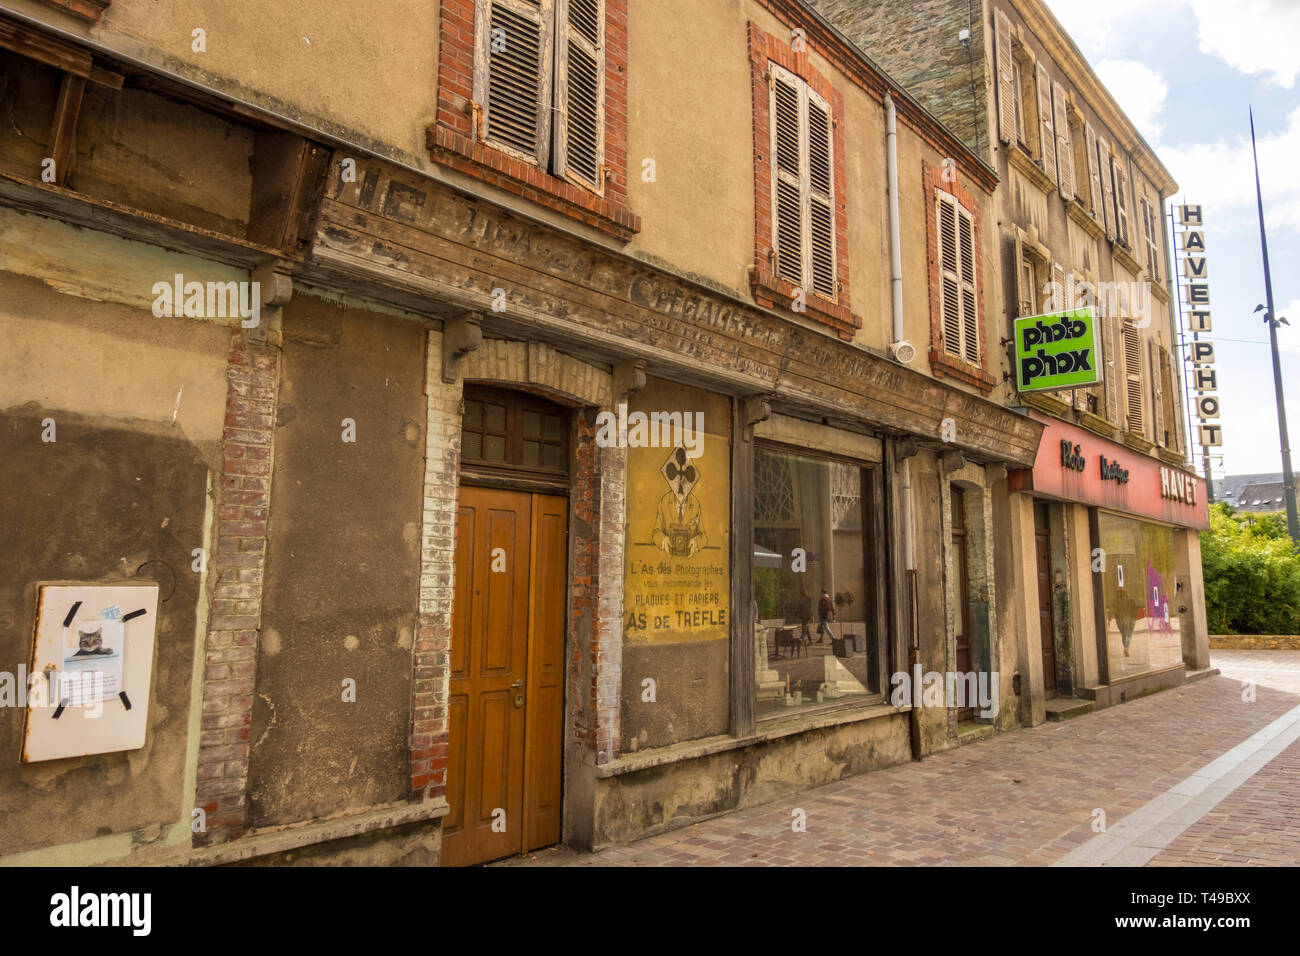 Cherbourg-Octeville, France - August 21, 2018: Old photo studio and photo shop on a street in Cherbourg city. Normandy, France - Stock Image